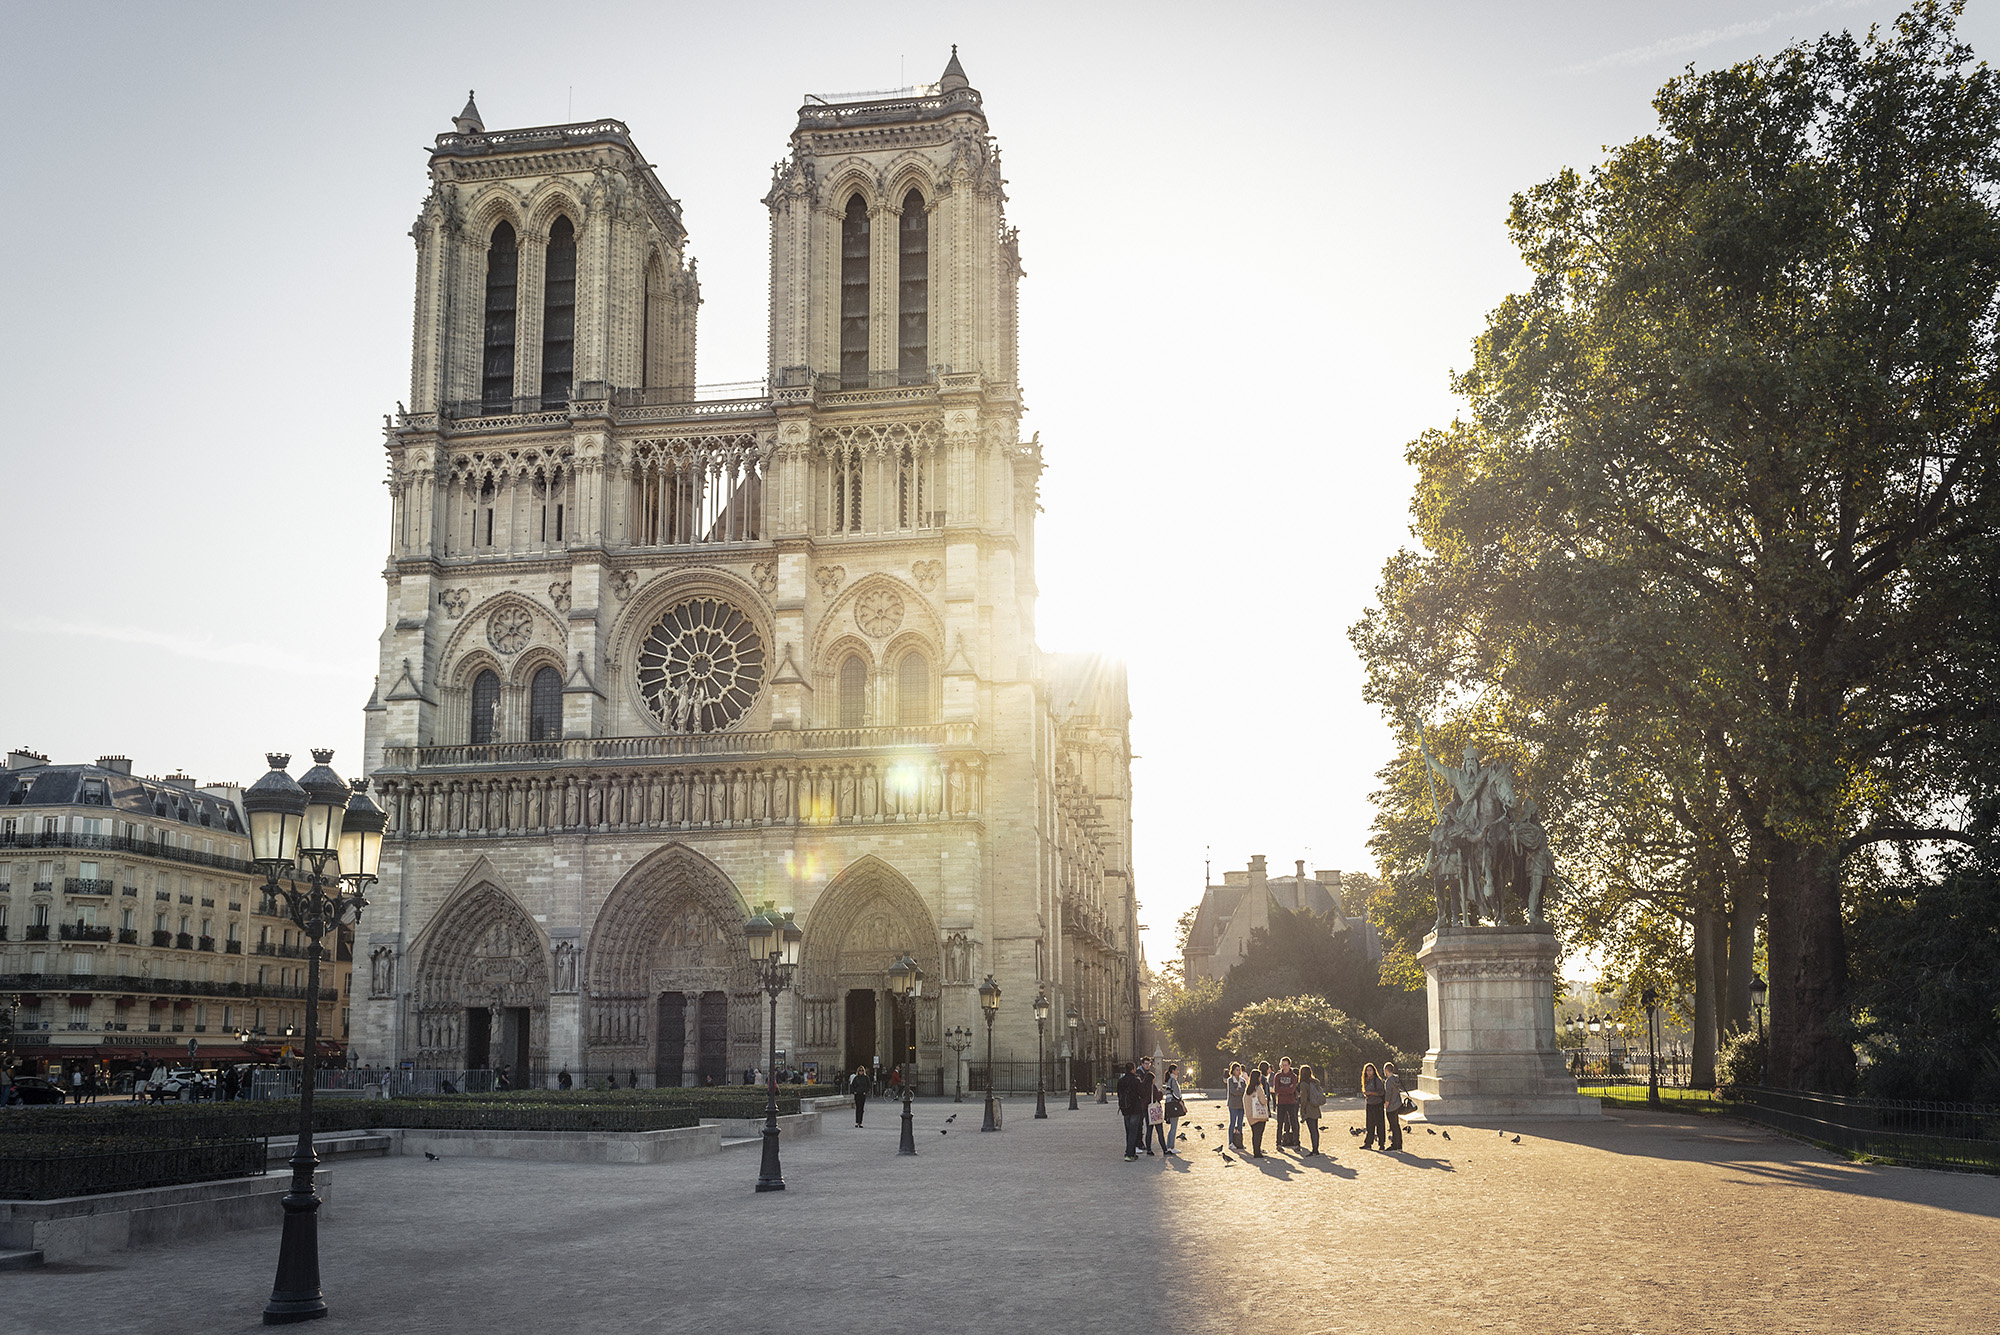 01_STOKES_NOTRE_DAME_CATHEDRAL_0003.jpg